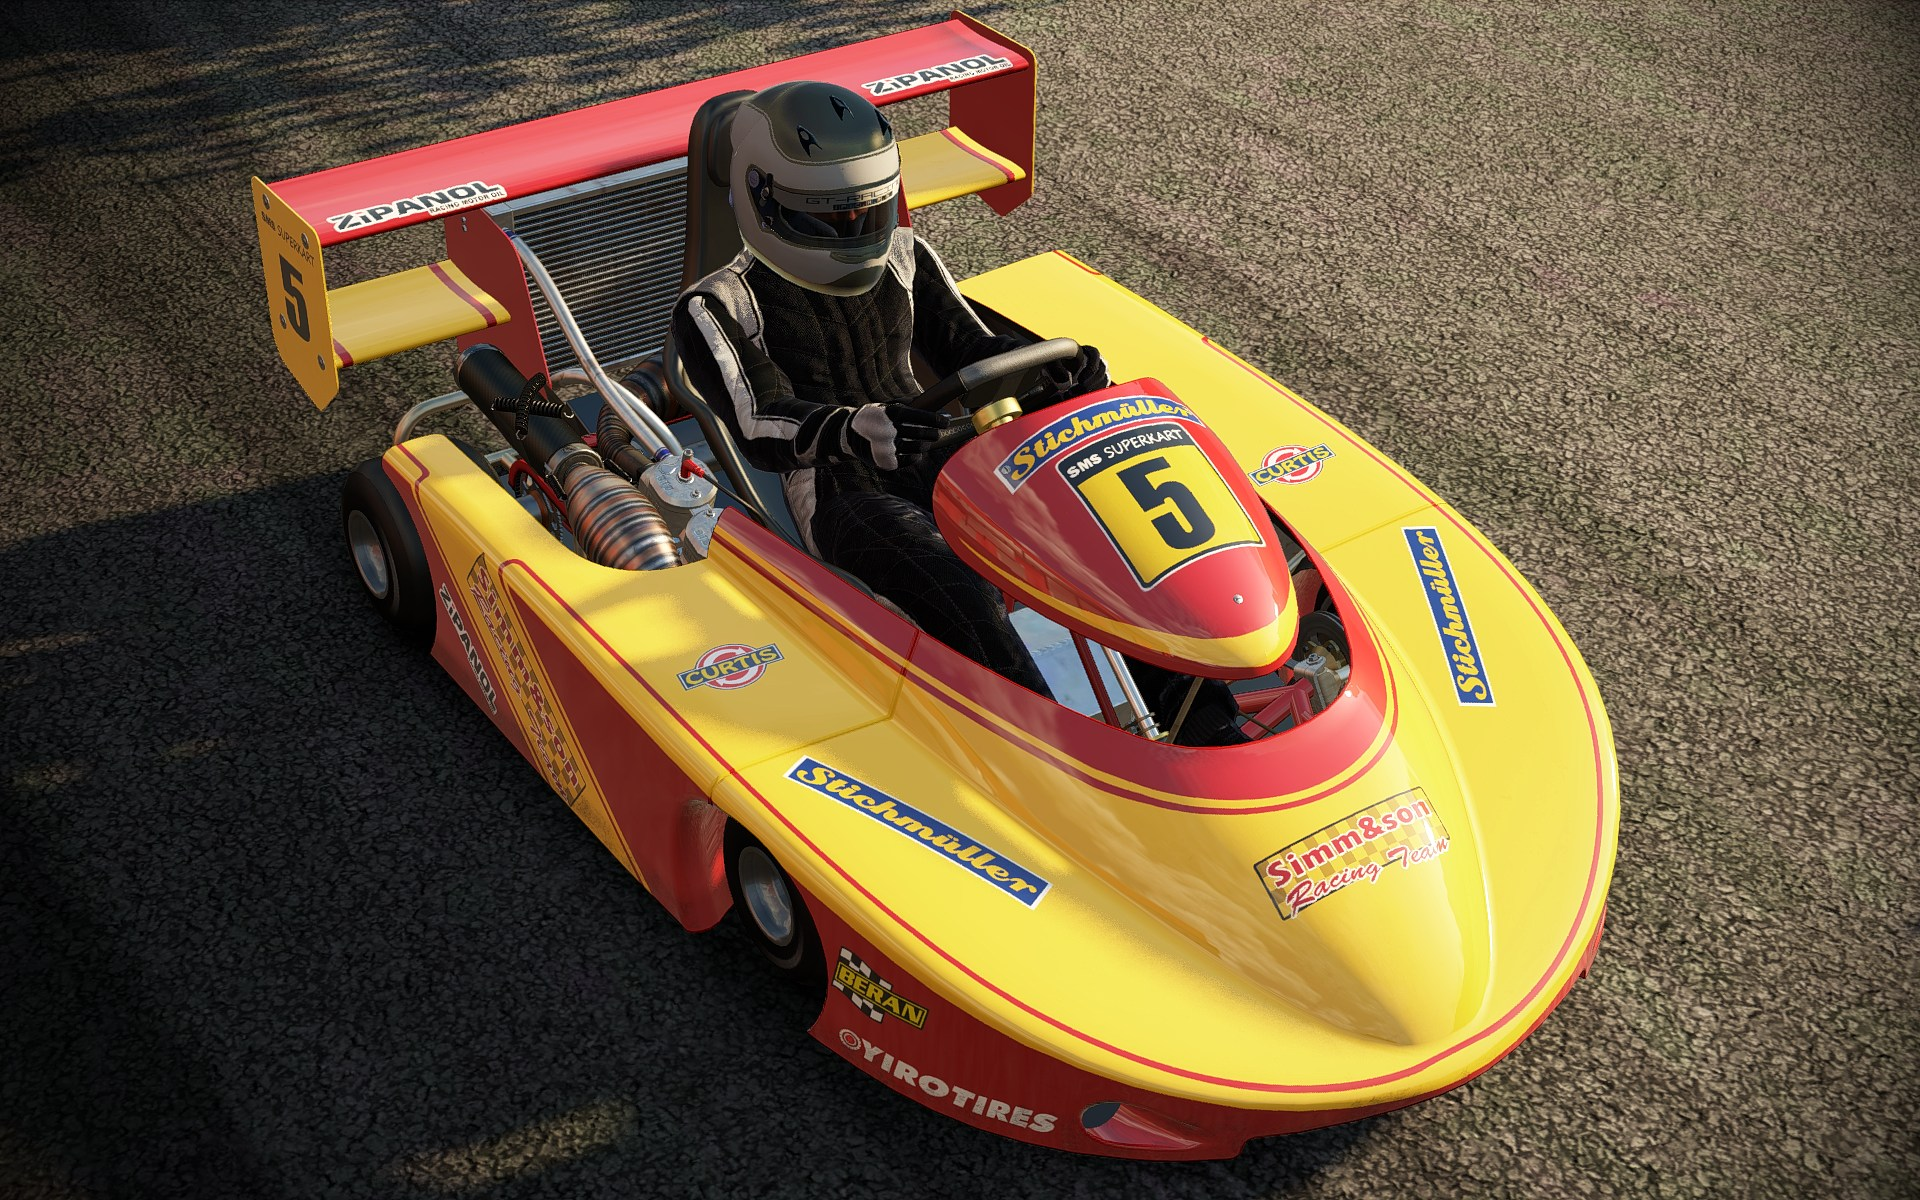 new release car games ps3New Stunning Project CARS Community Screenshots  DSOGaming  The